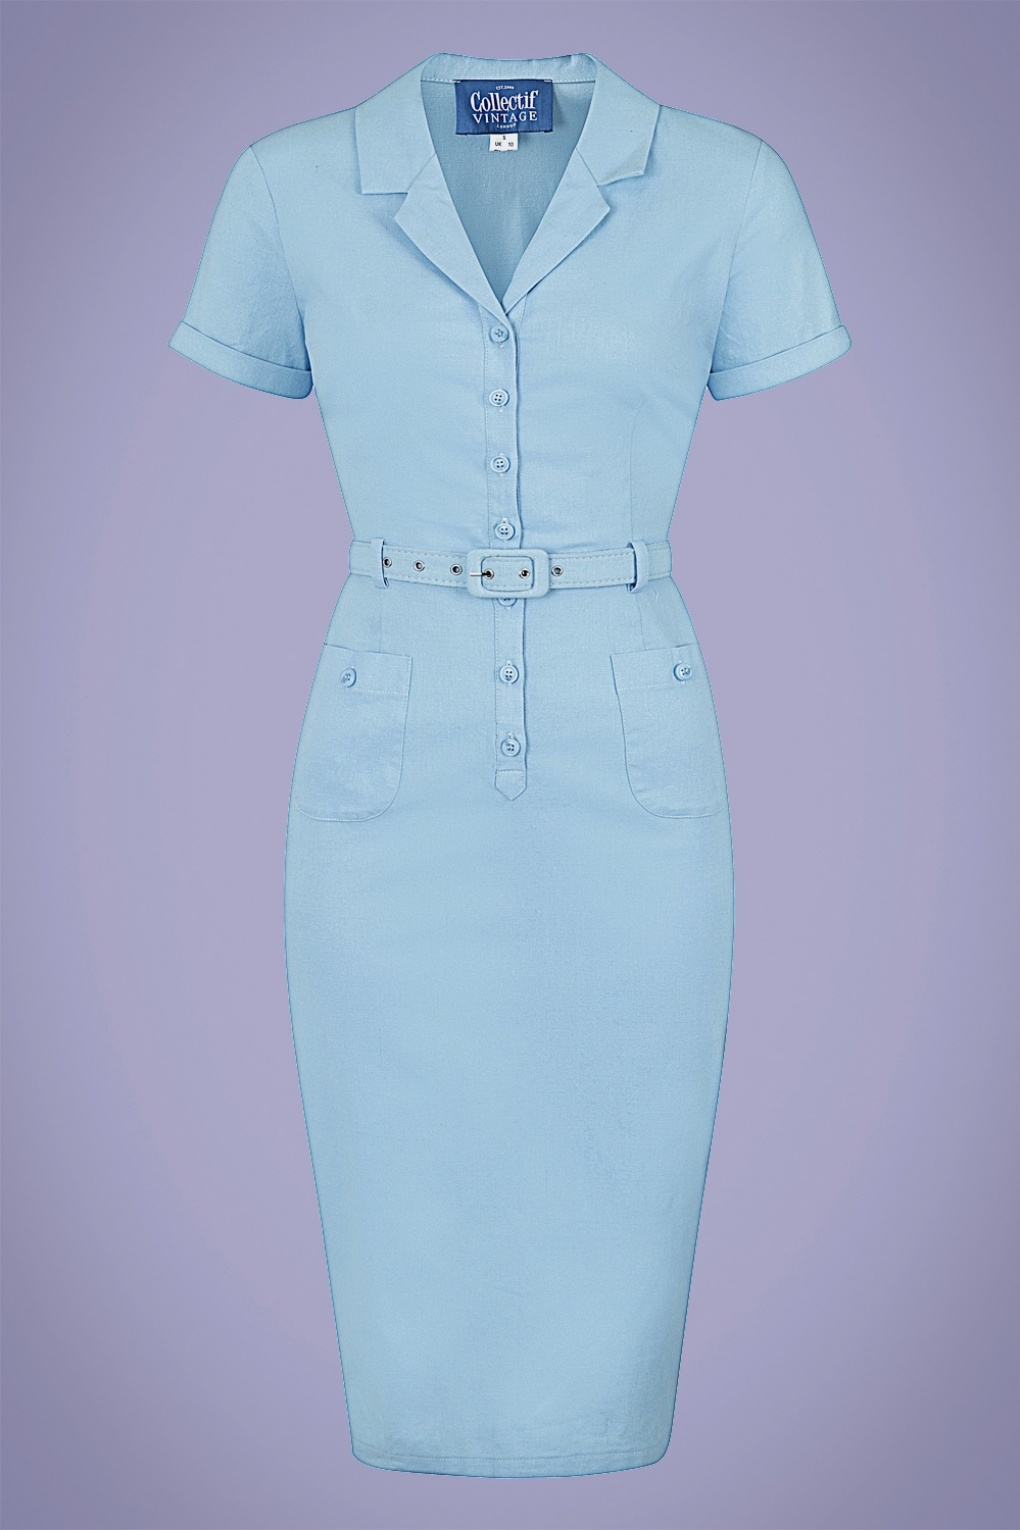 500 Vintage Style Dresses for Sale | Vintage Inspired Dresses 50s Caterina Pencil Dress in Light Blue £58.63 AT vintagedancer.com